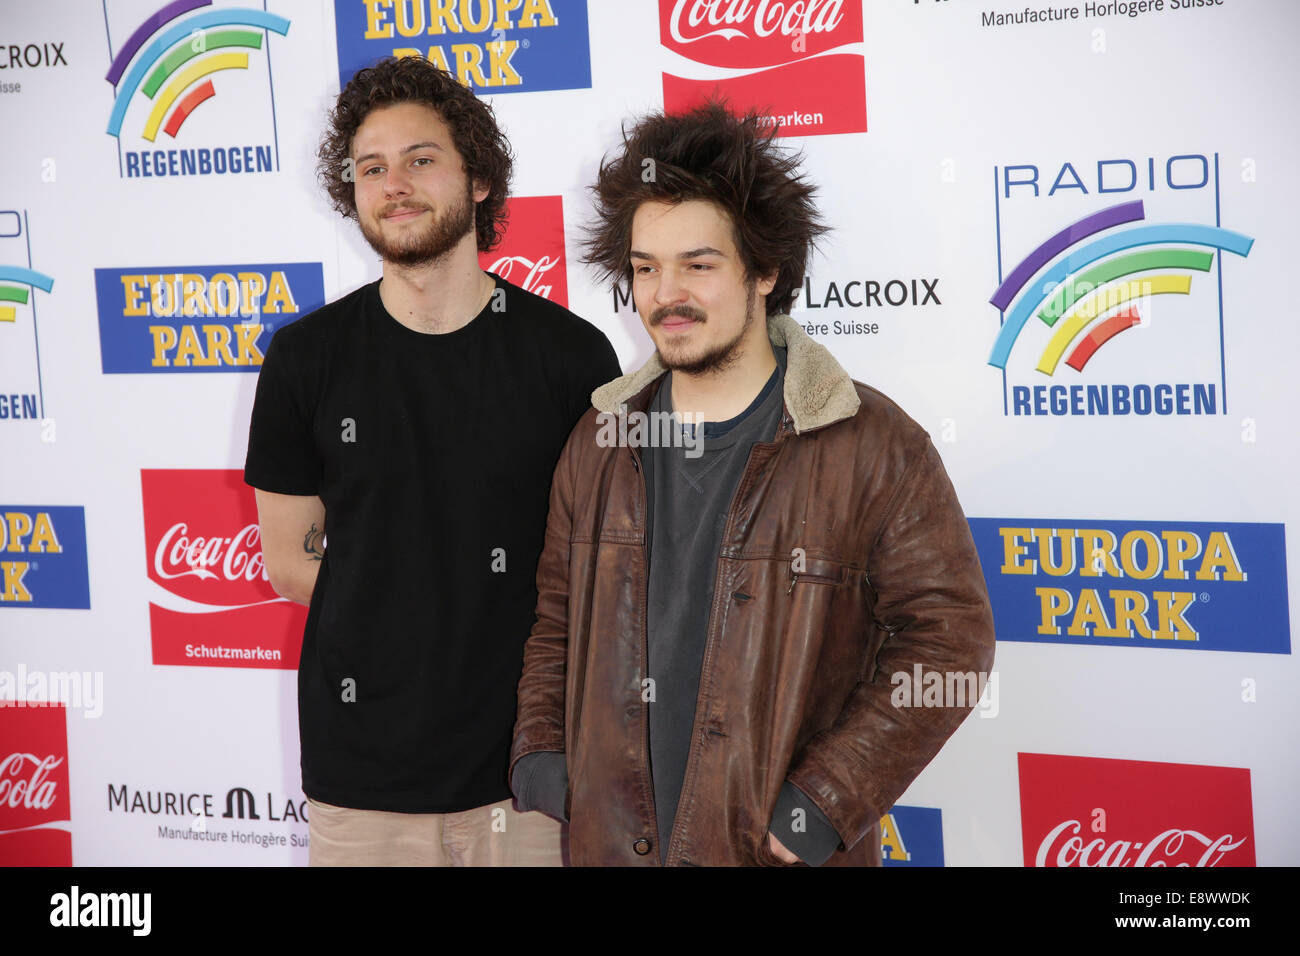 Radio Regenbogen Award 2014 at Europa-Park. - Arrivals  Featuring: Milky Chance Where: Rust, Germany When: 12 Apr - Stock Image